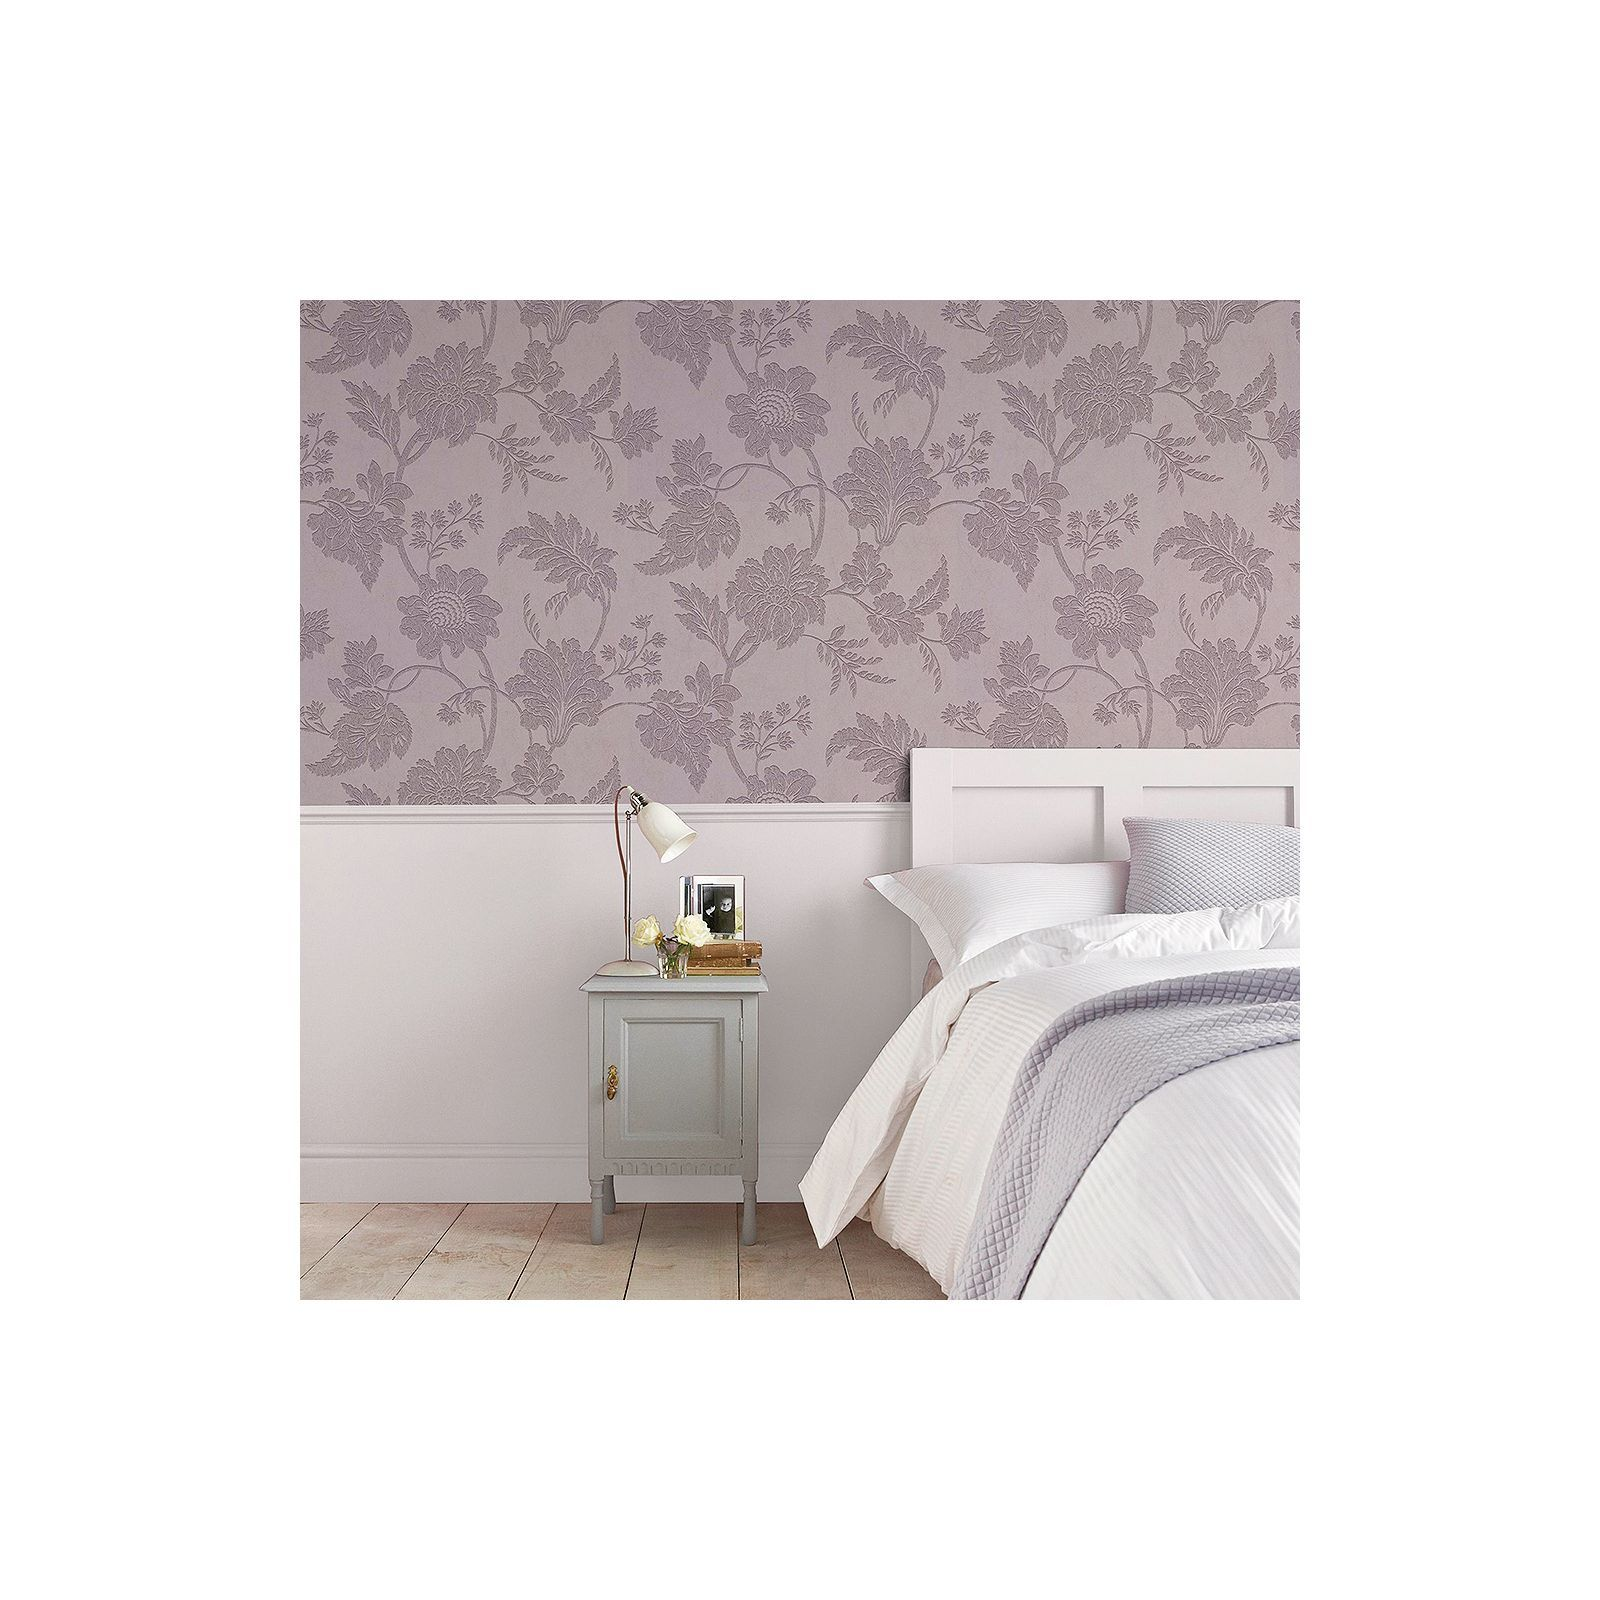 Graham & Brown Artisan Paste the Wall Mystique Mulberry Wallpaper